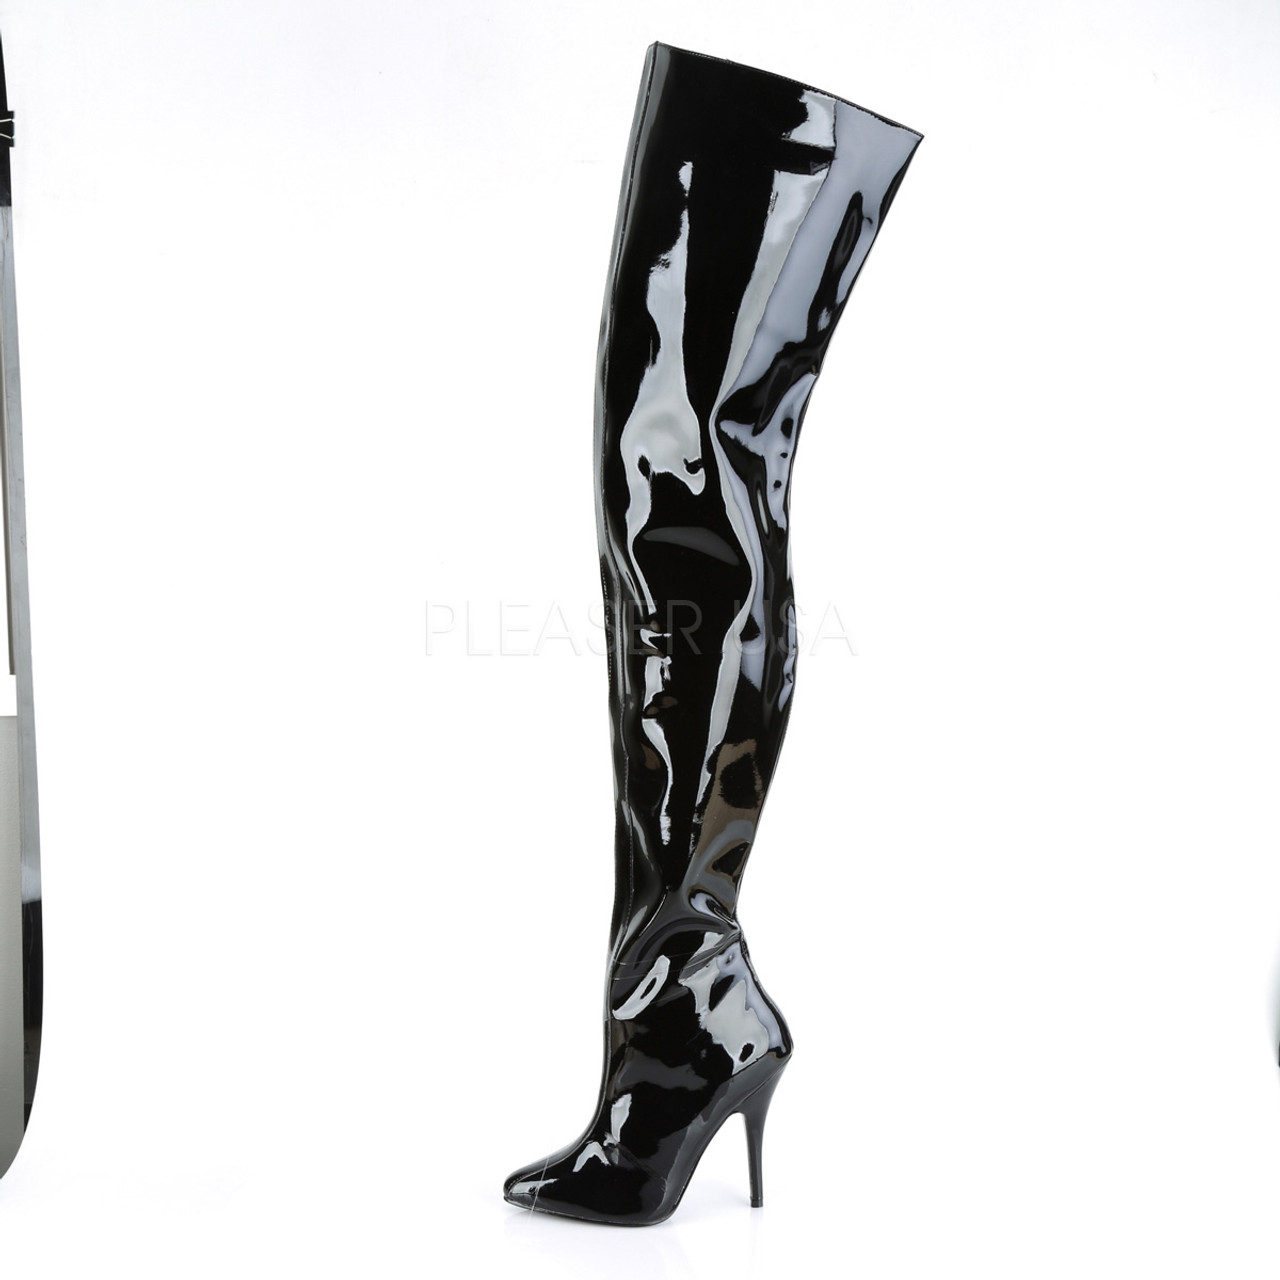 Pleaser Shoes - wide top crotch 5 inch black thigh high boots